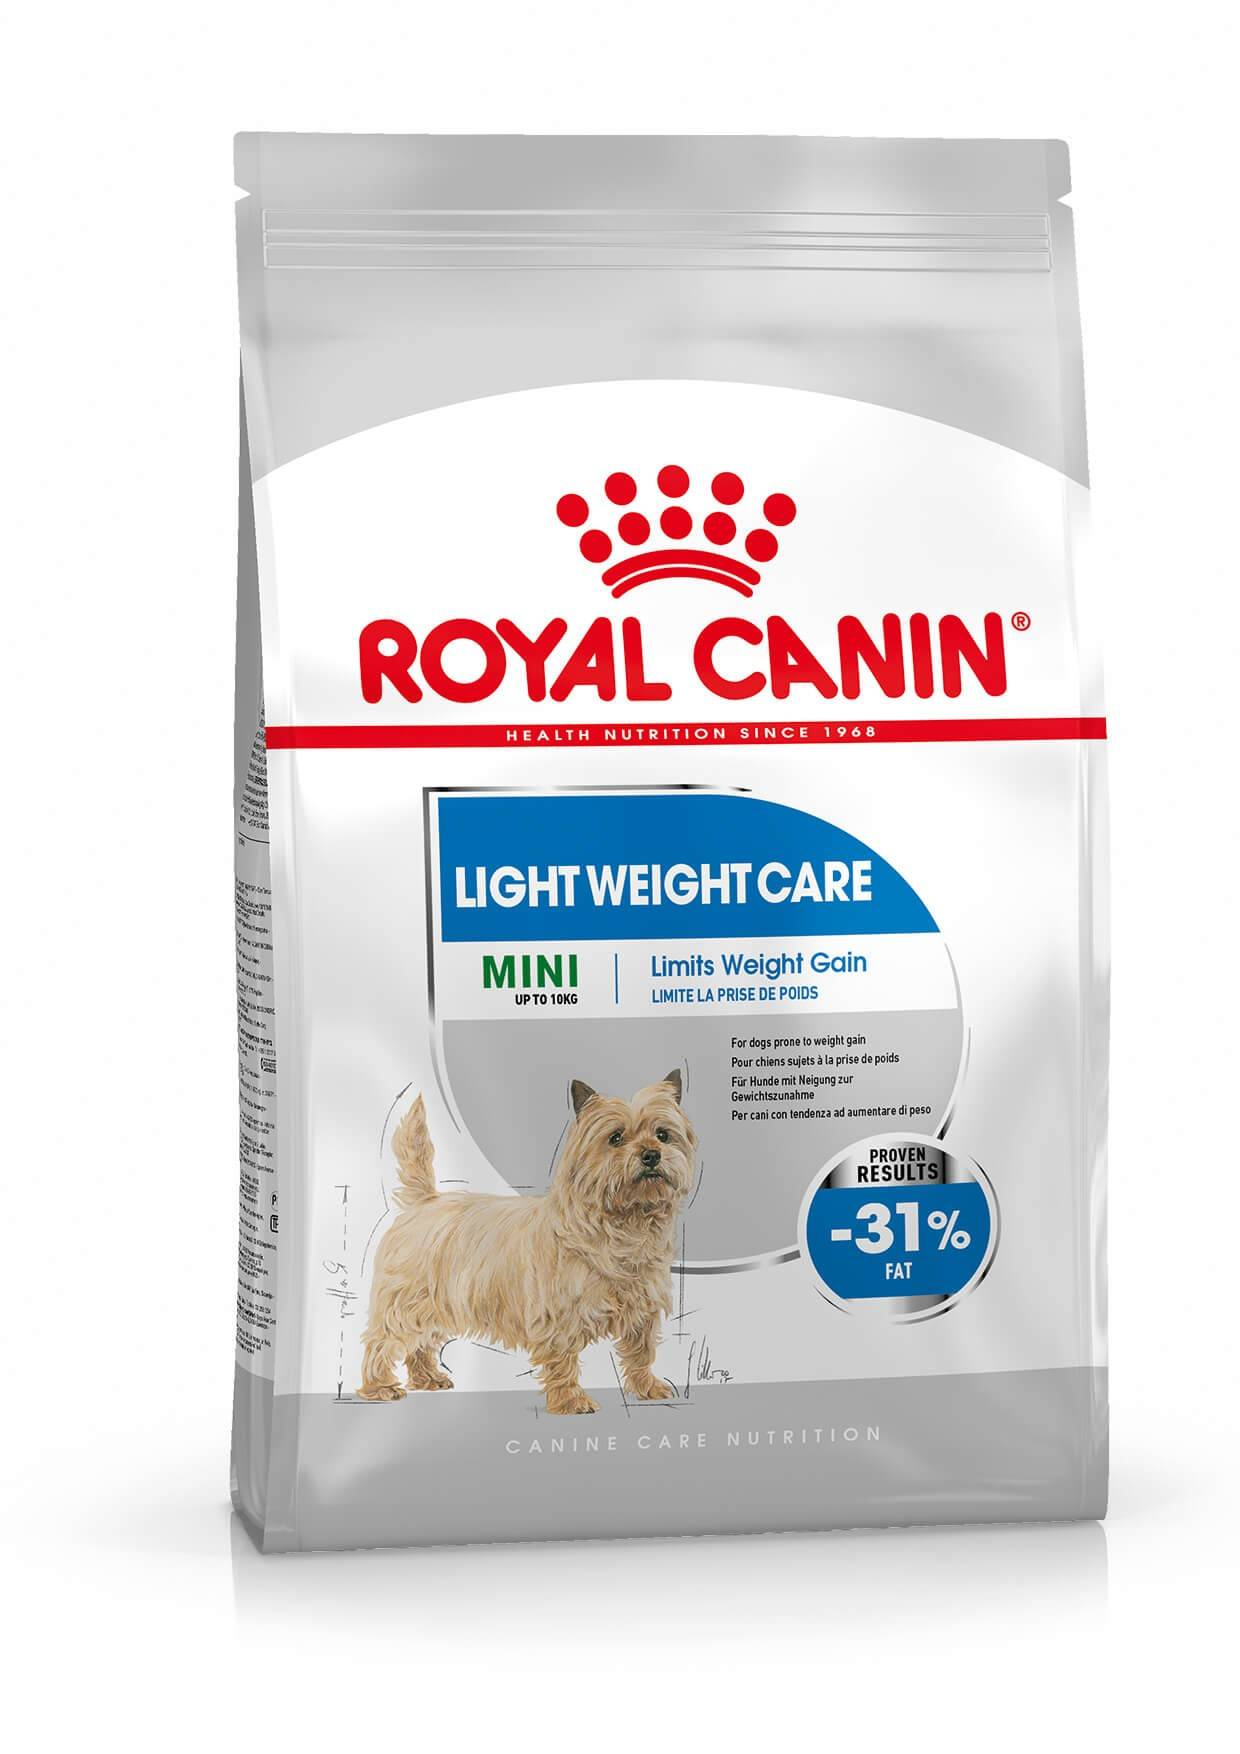 Royal Canin Canine Care Nutrition Mini Light Weight Care 1 kg